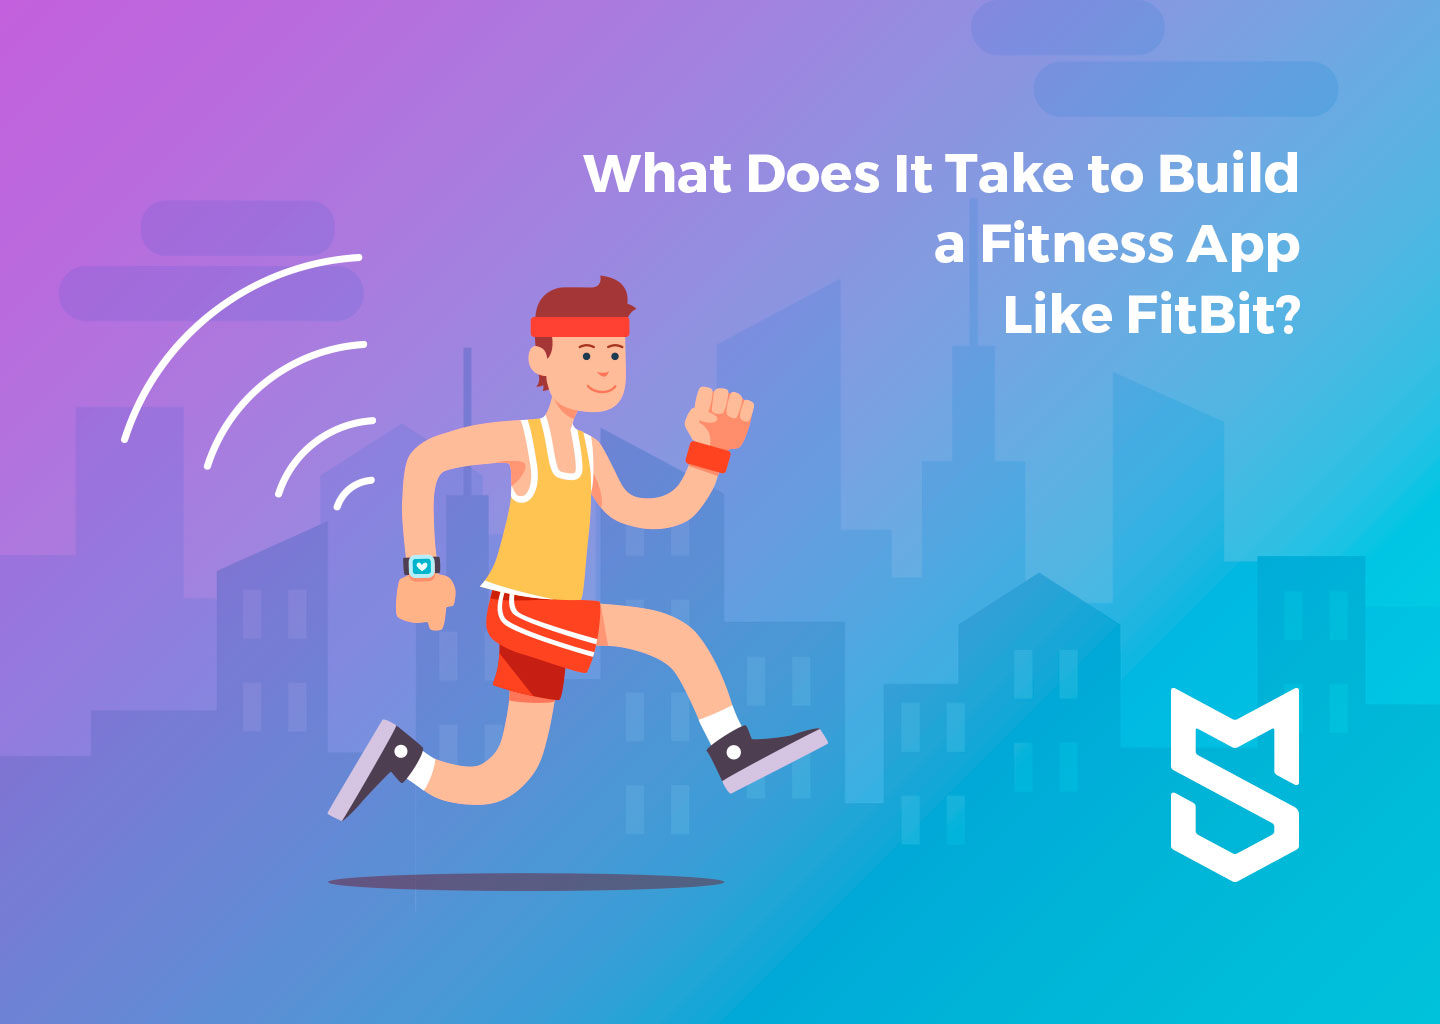 What Does It Take to Build a Fitness App Like FitBit?